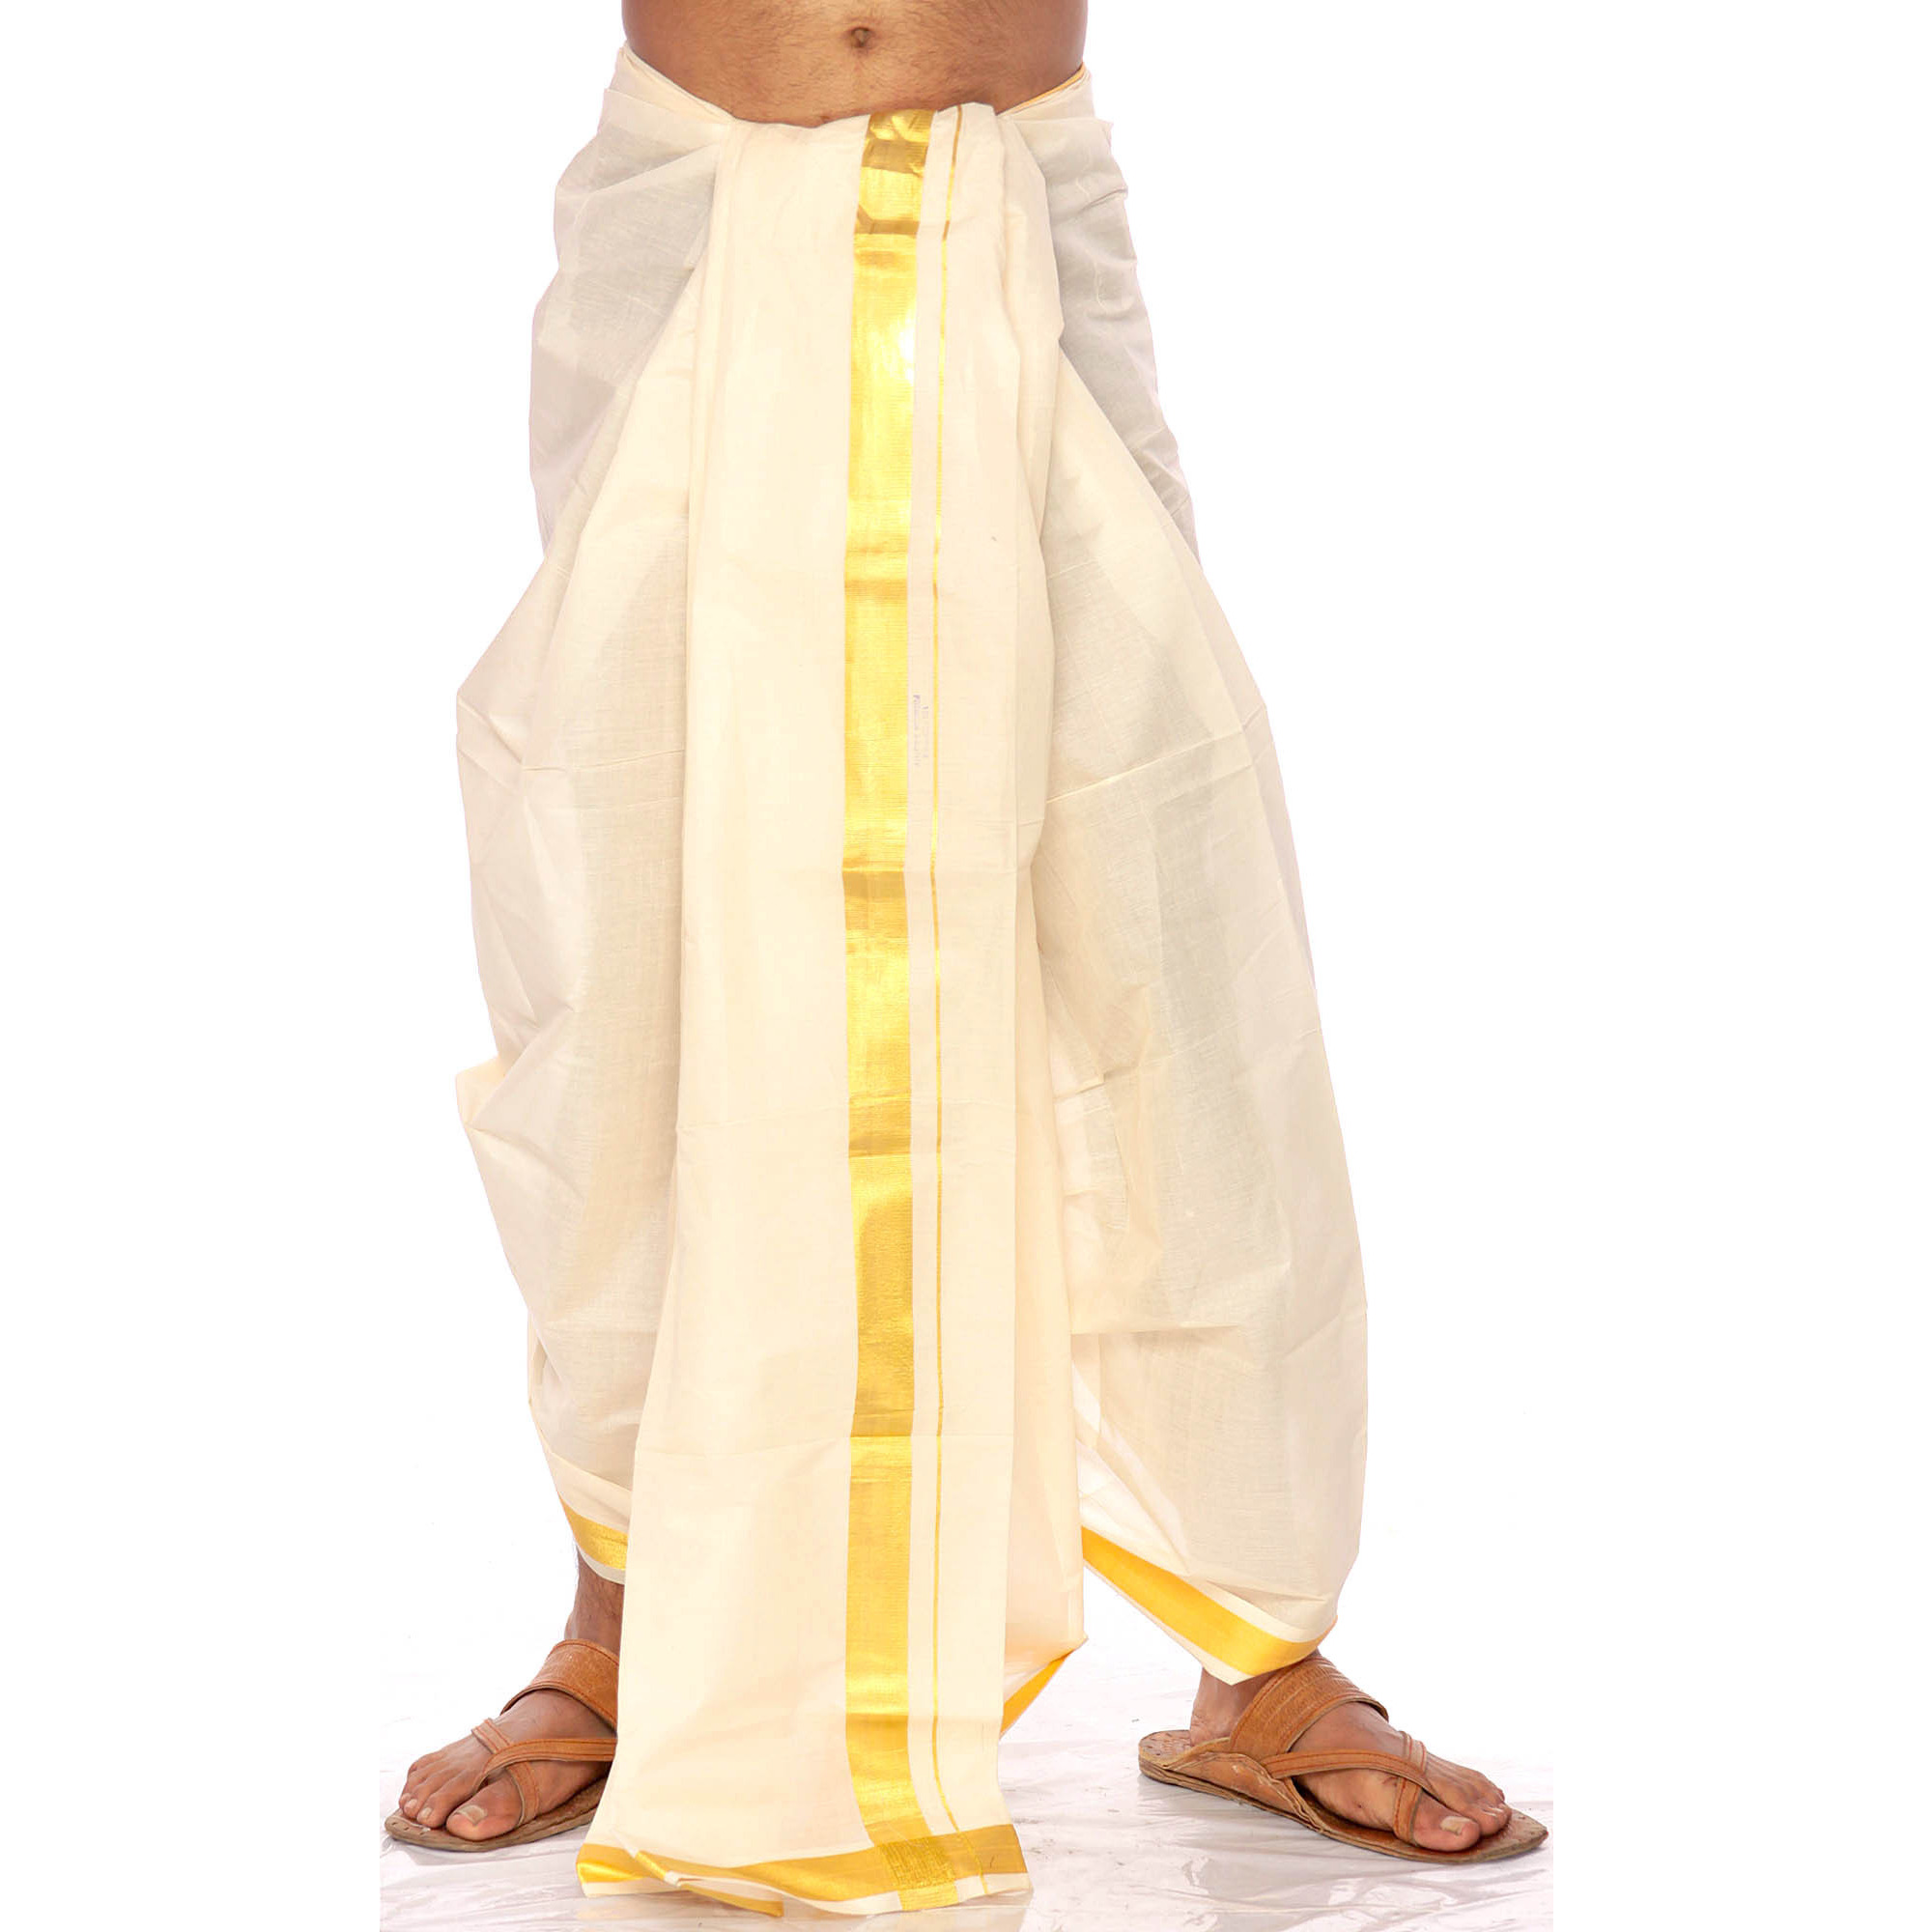 Off-White Kasavu Dhoti from Kerala with Wide Golden Woven Border